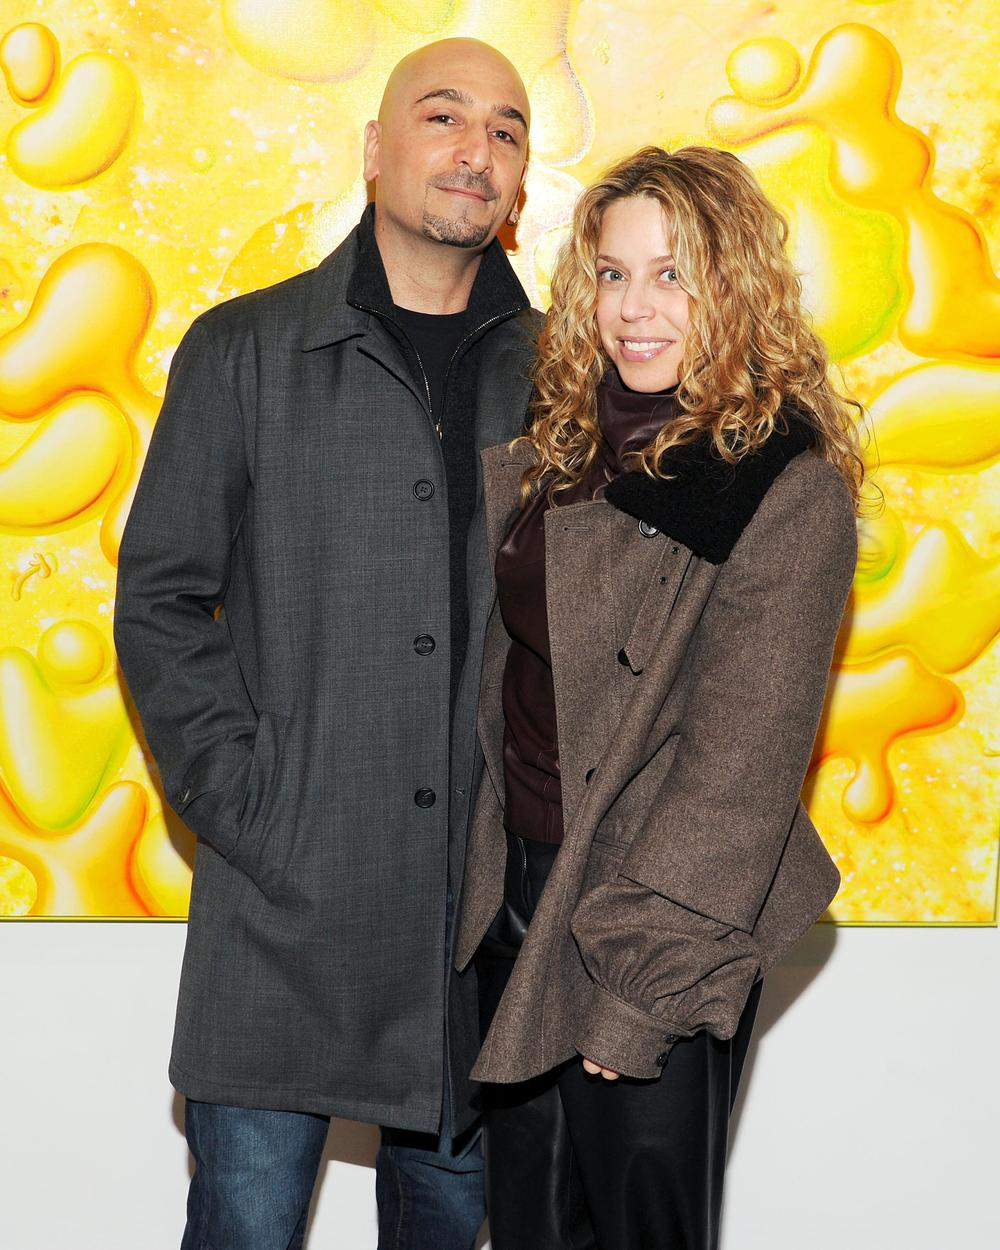 Todd Cuso and Karen Robinovitz